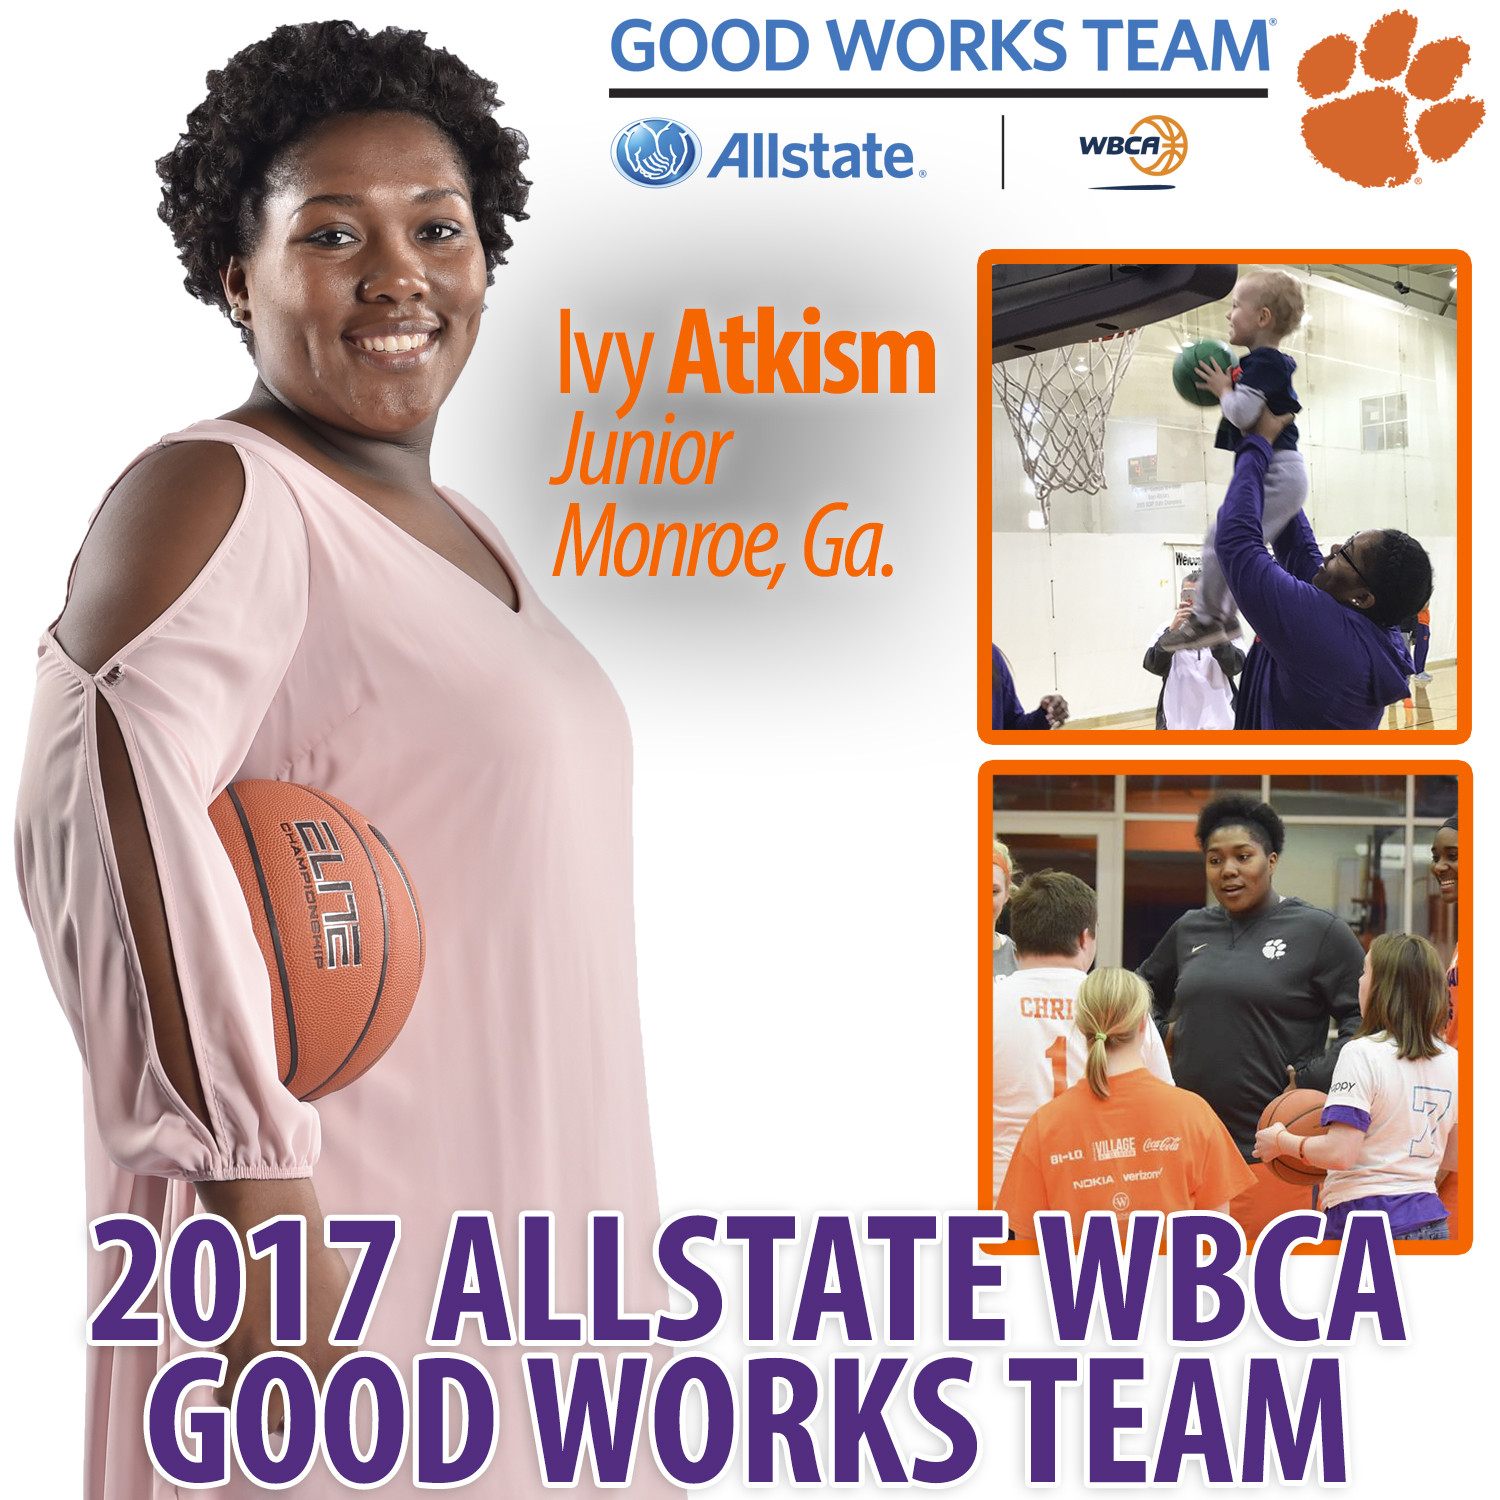 Ivy Atkism Named to 2017 Allstate WBCA Good Works Team